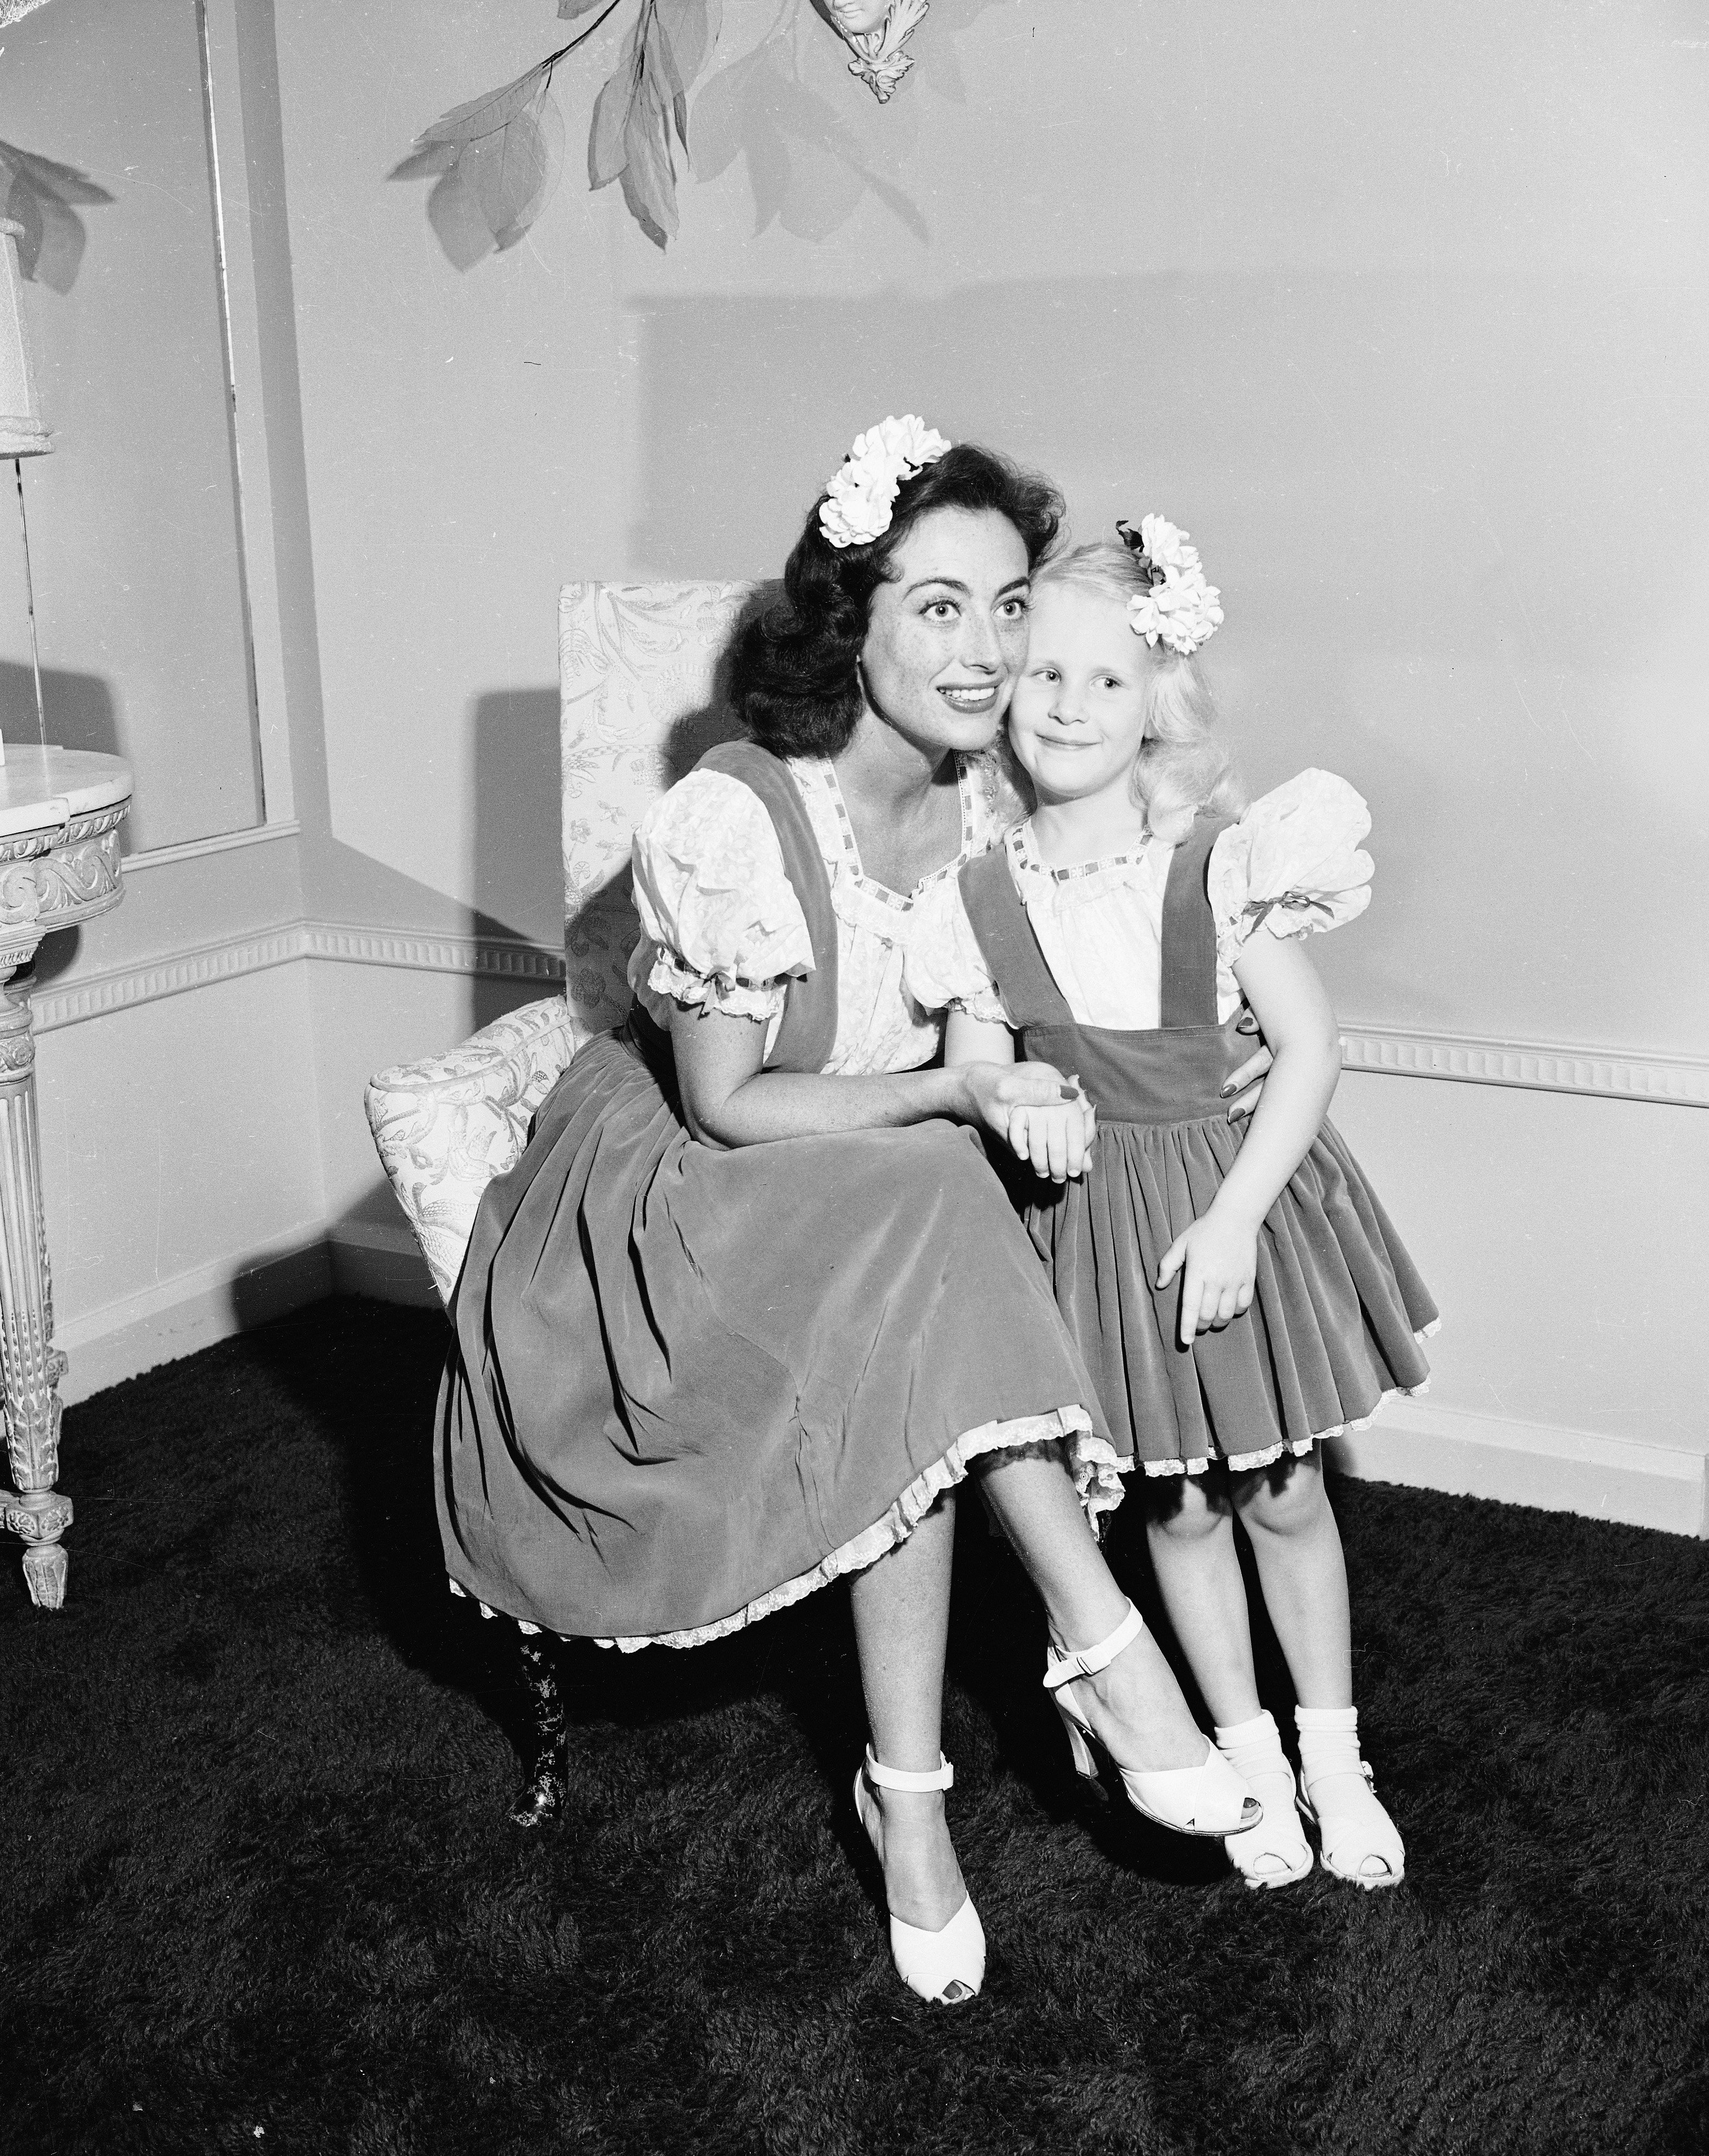 American actor Joan Crawford (1904 - 1977) hugs her adopted daughter Christina, wearing matching outfits, June 1944.   Source: Getty Images